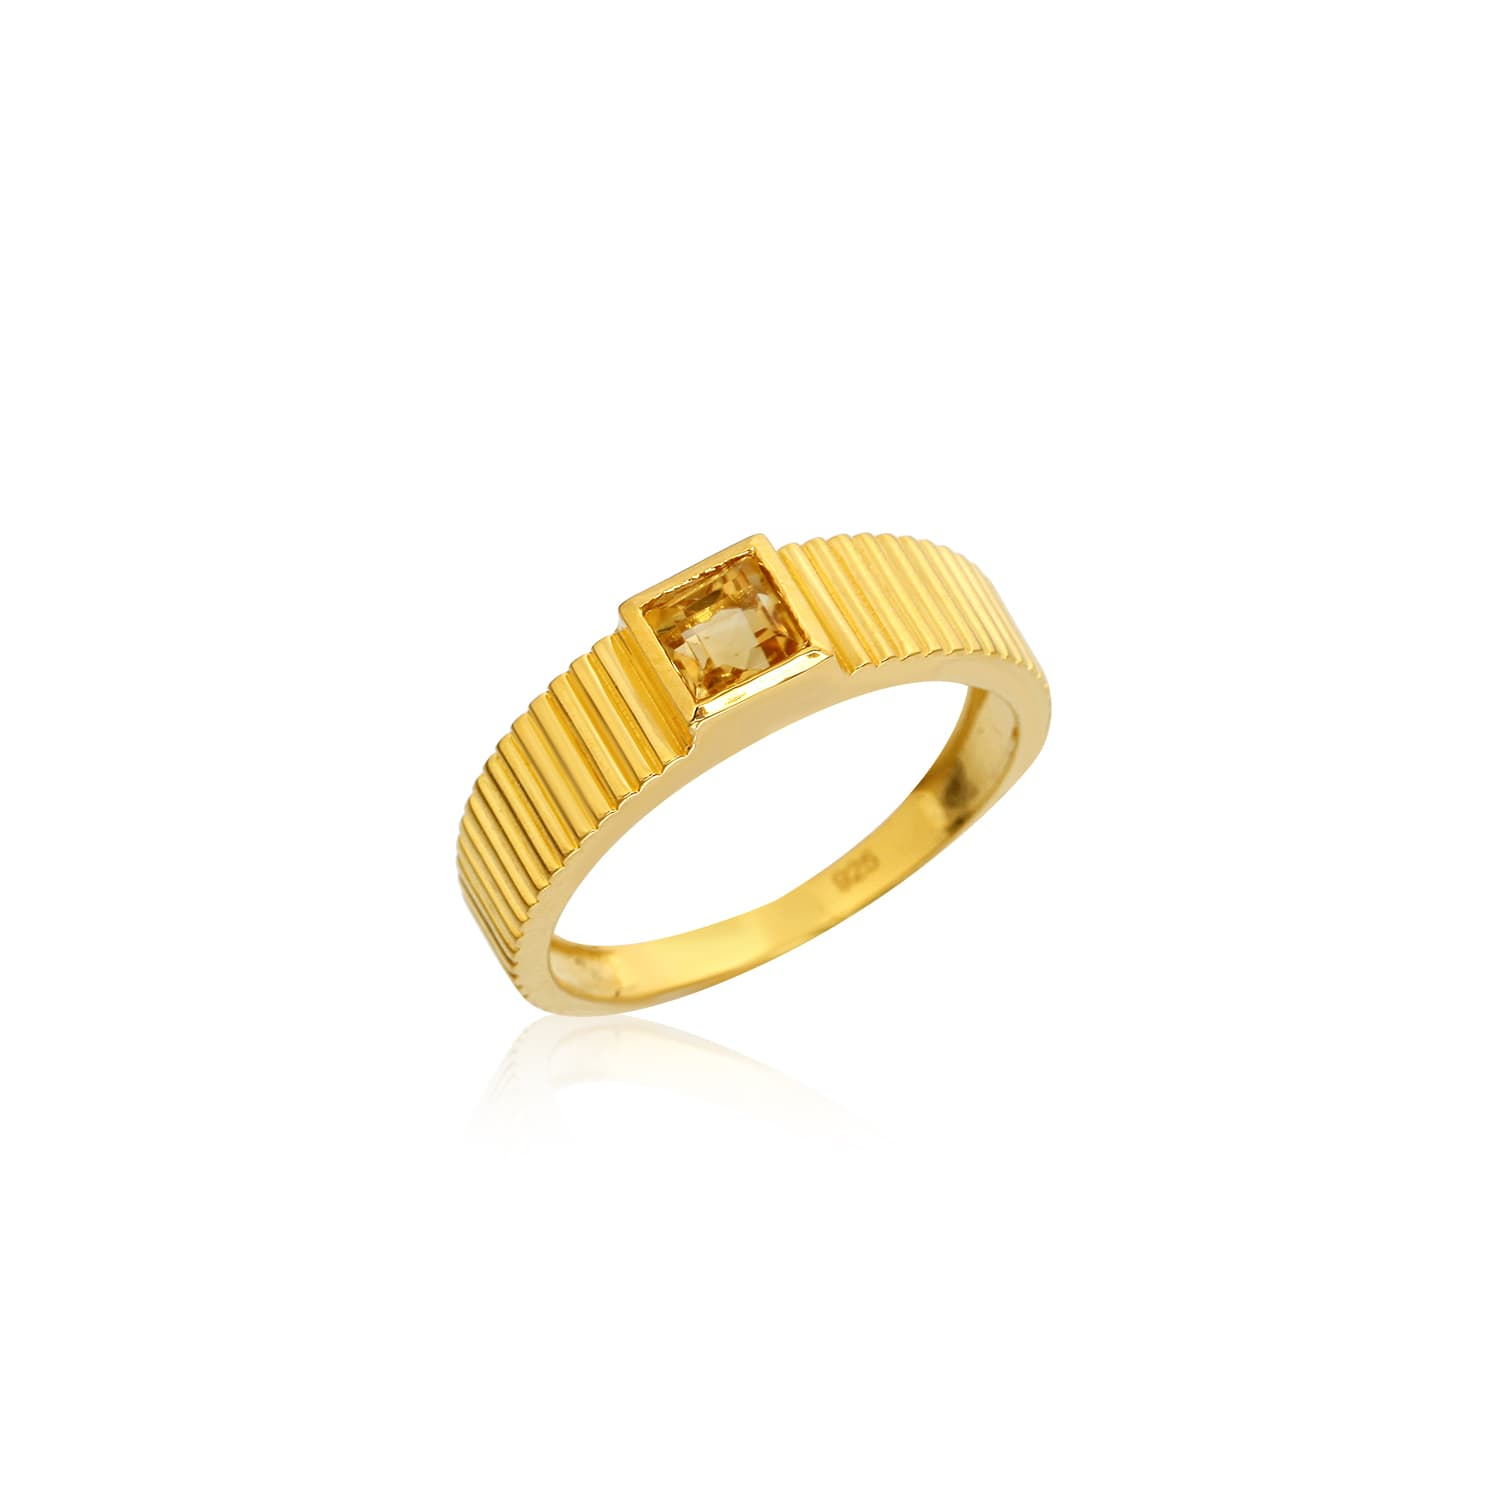 RAE CITRINE RING